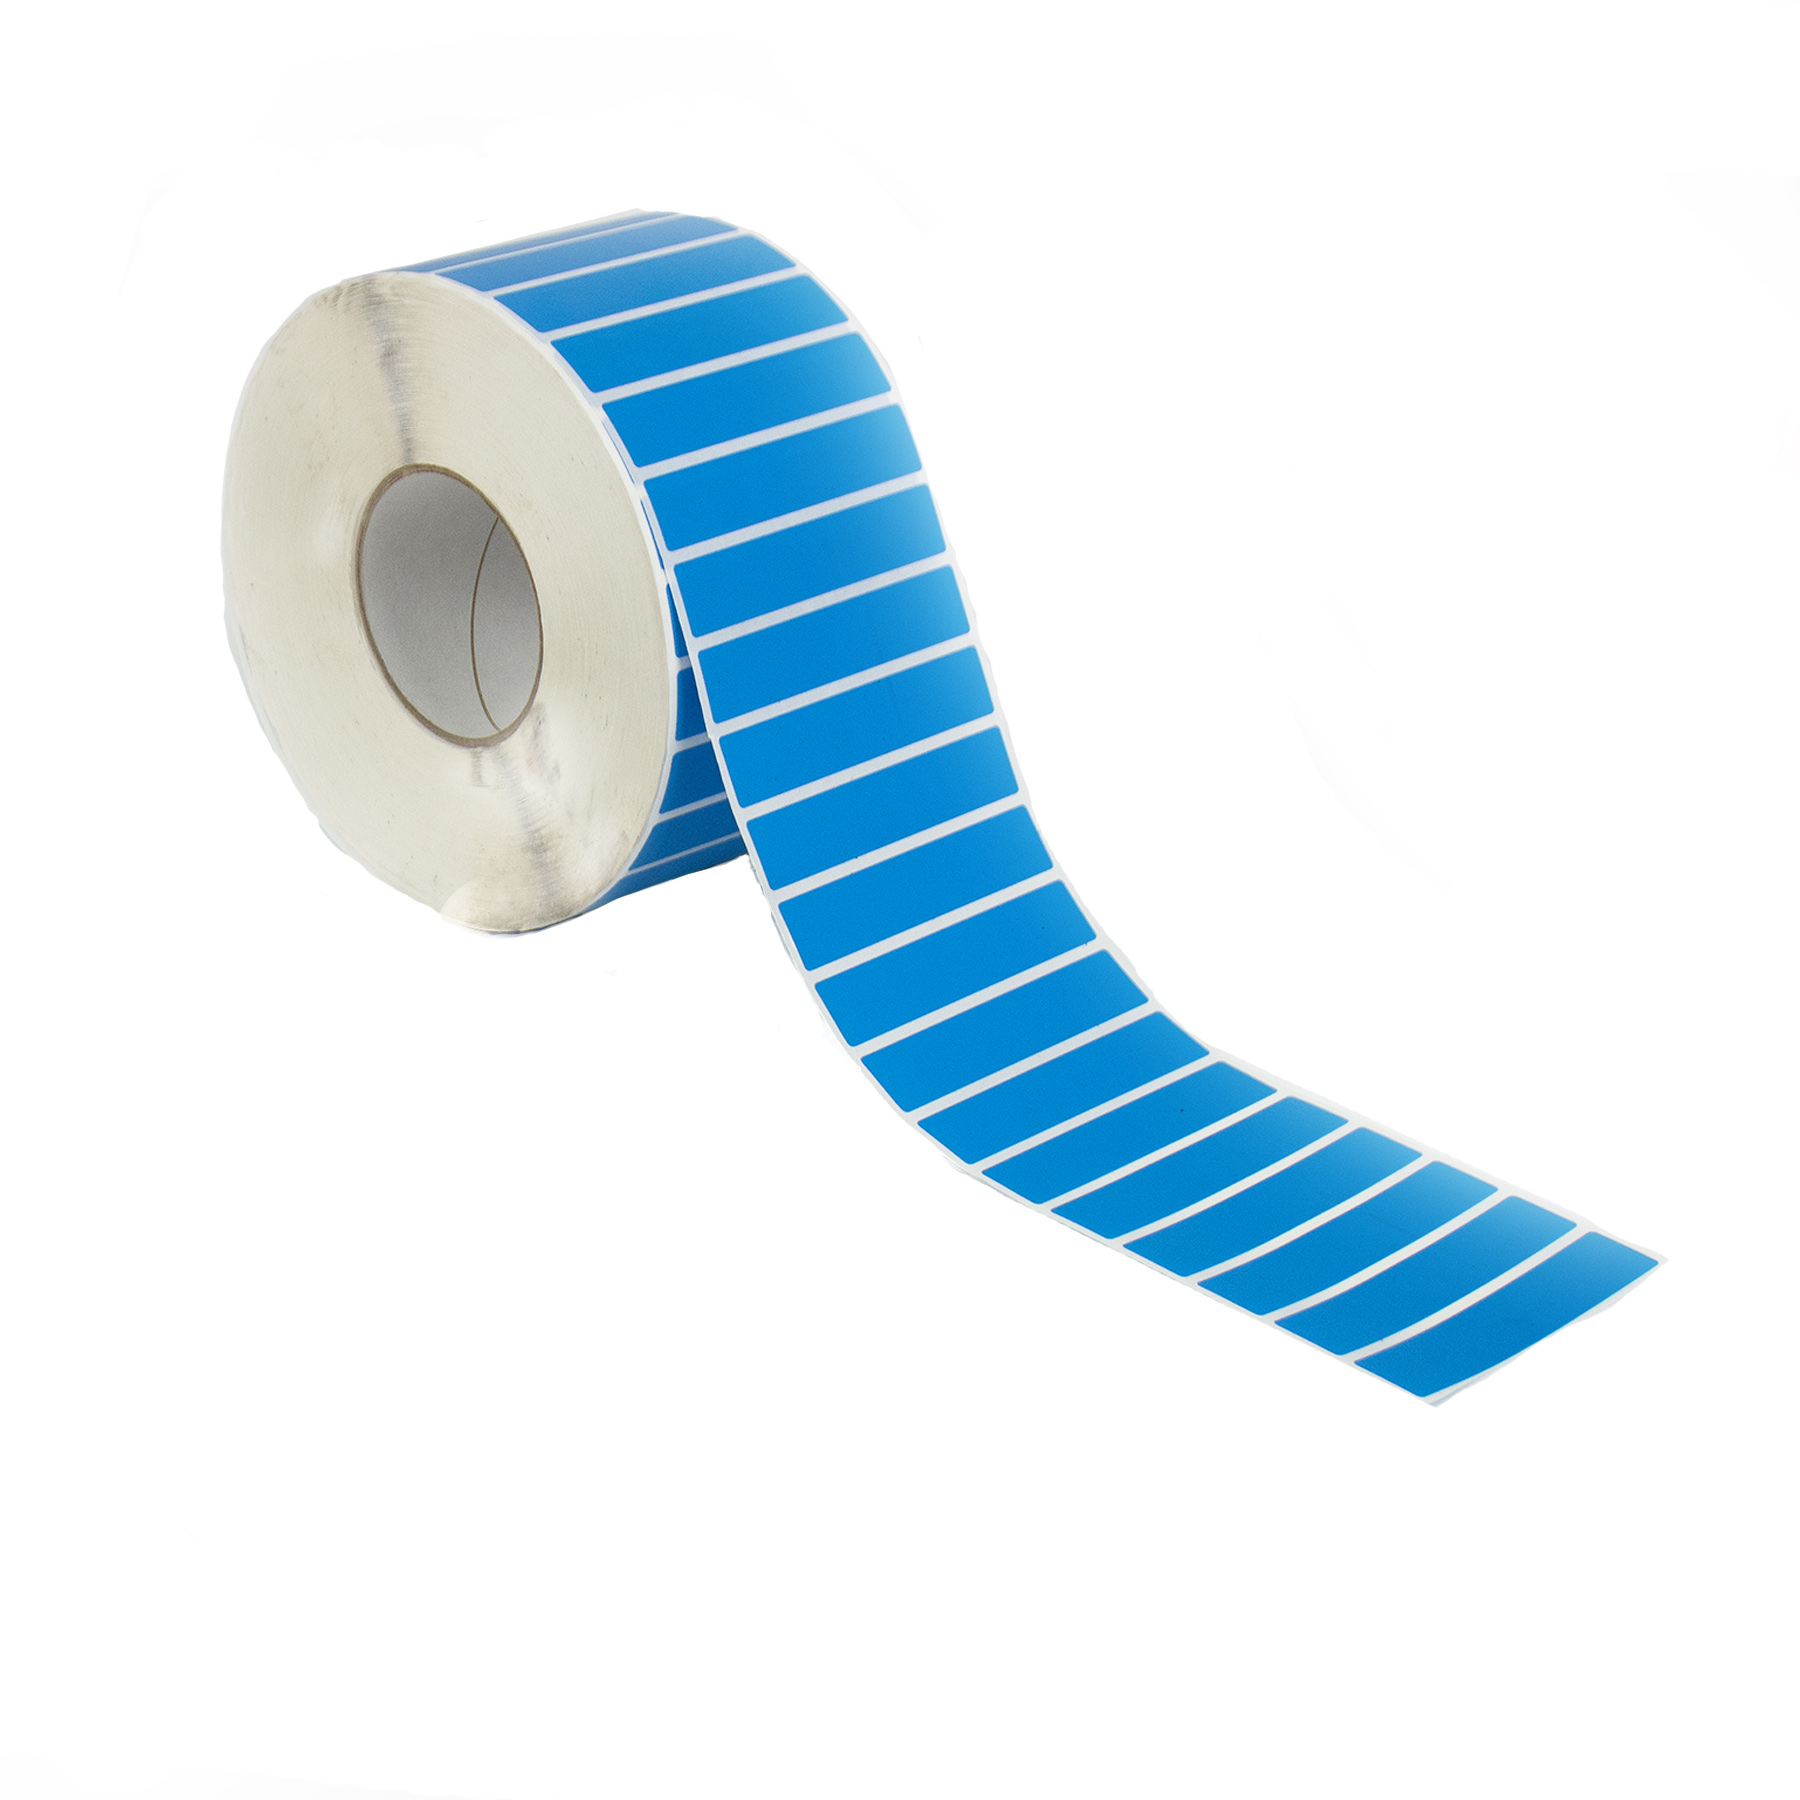 Blue 100x20 Non-residue labels